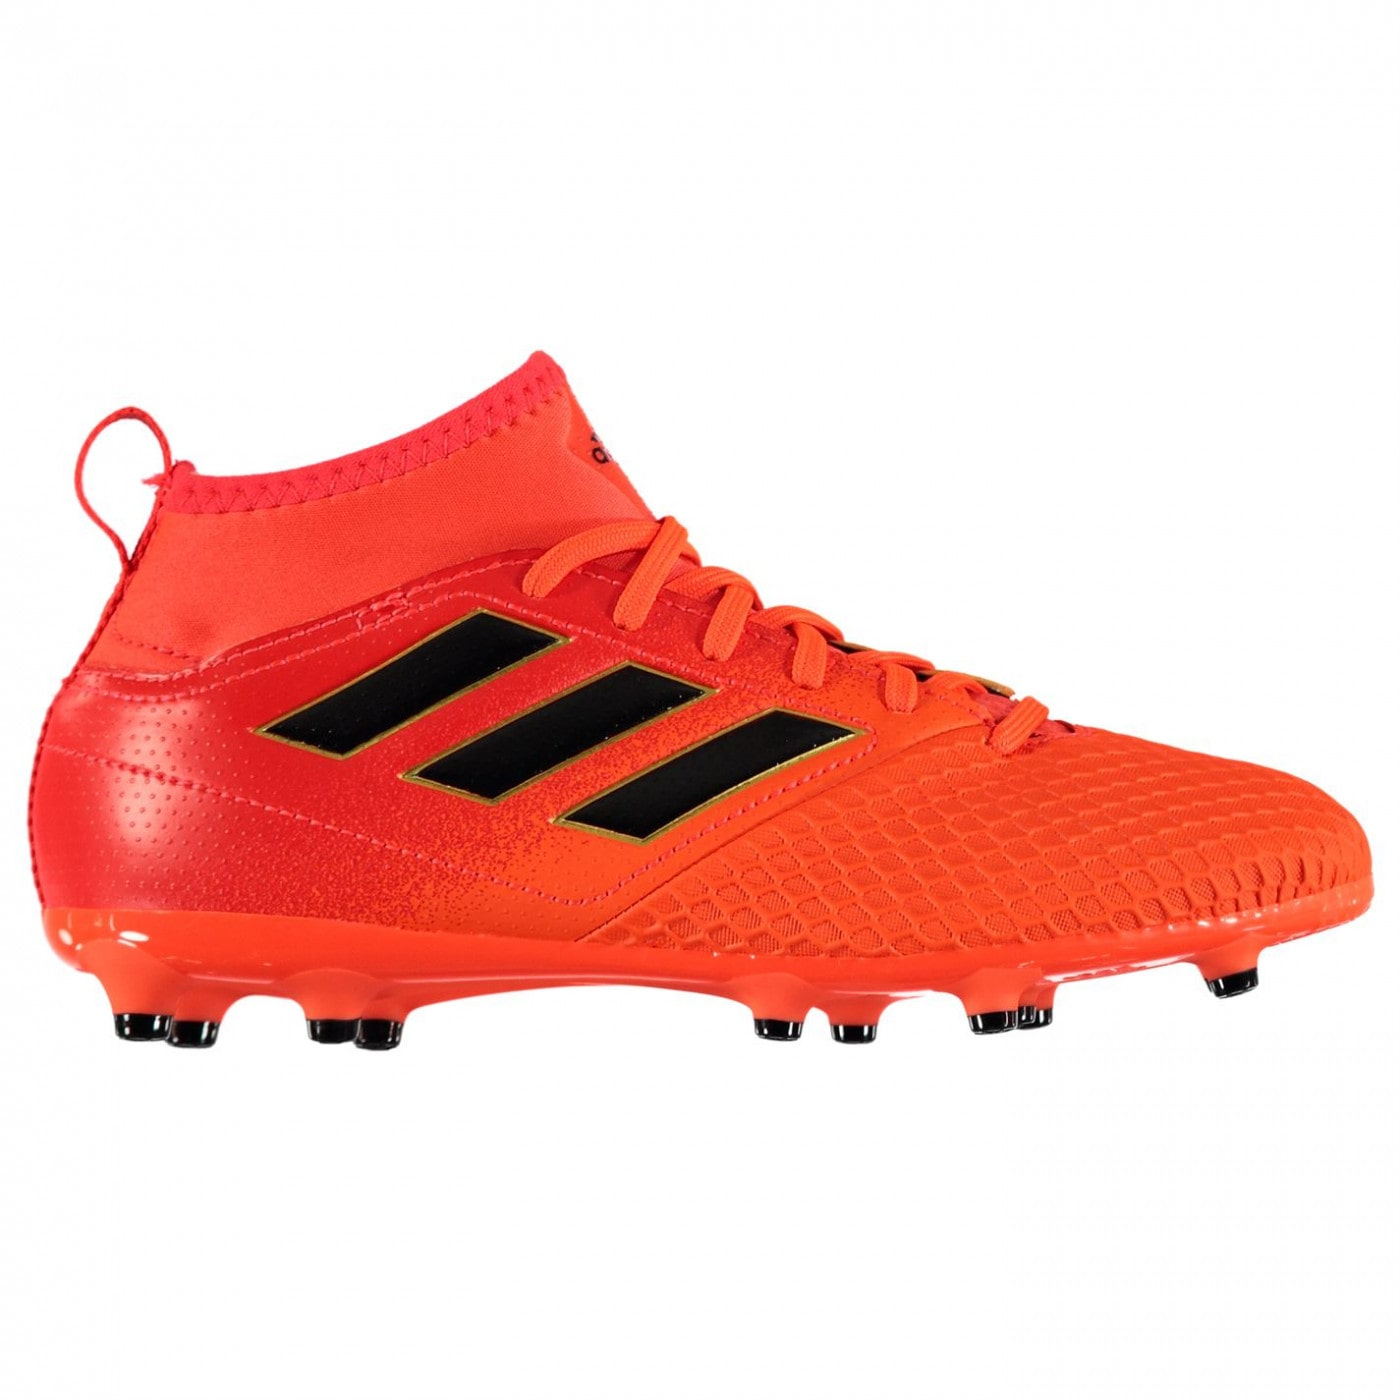 Adidas Ace 17.3 Primemesh FG Junior Football Boots - FACTCOOL